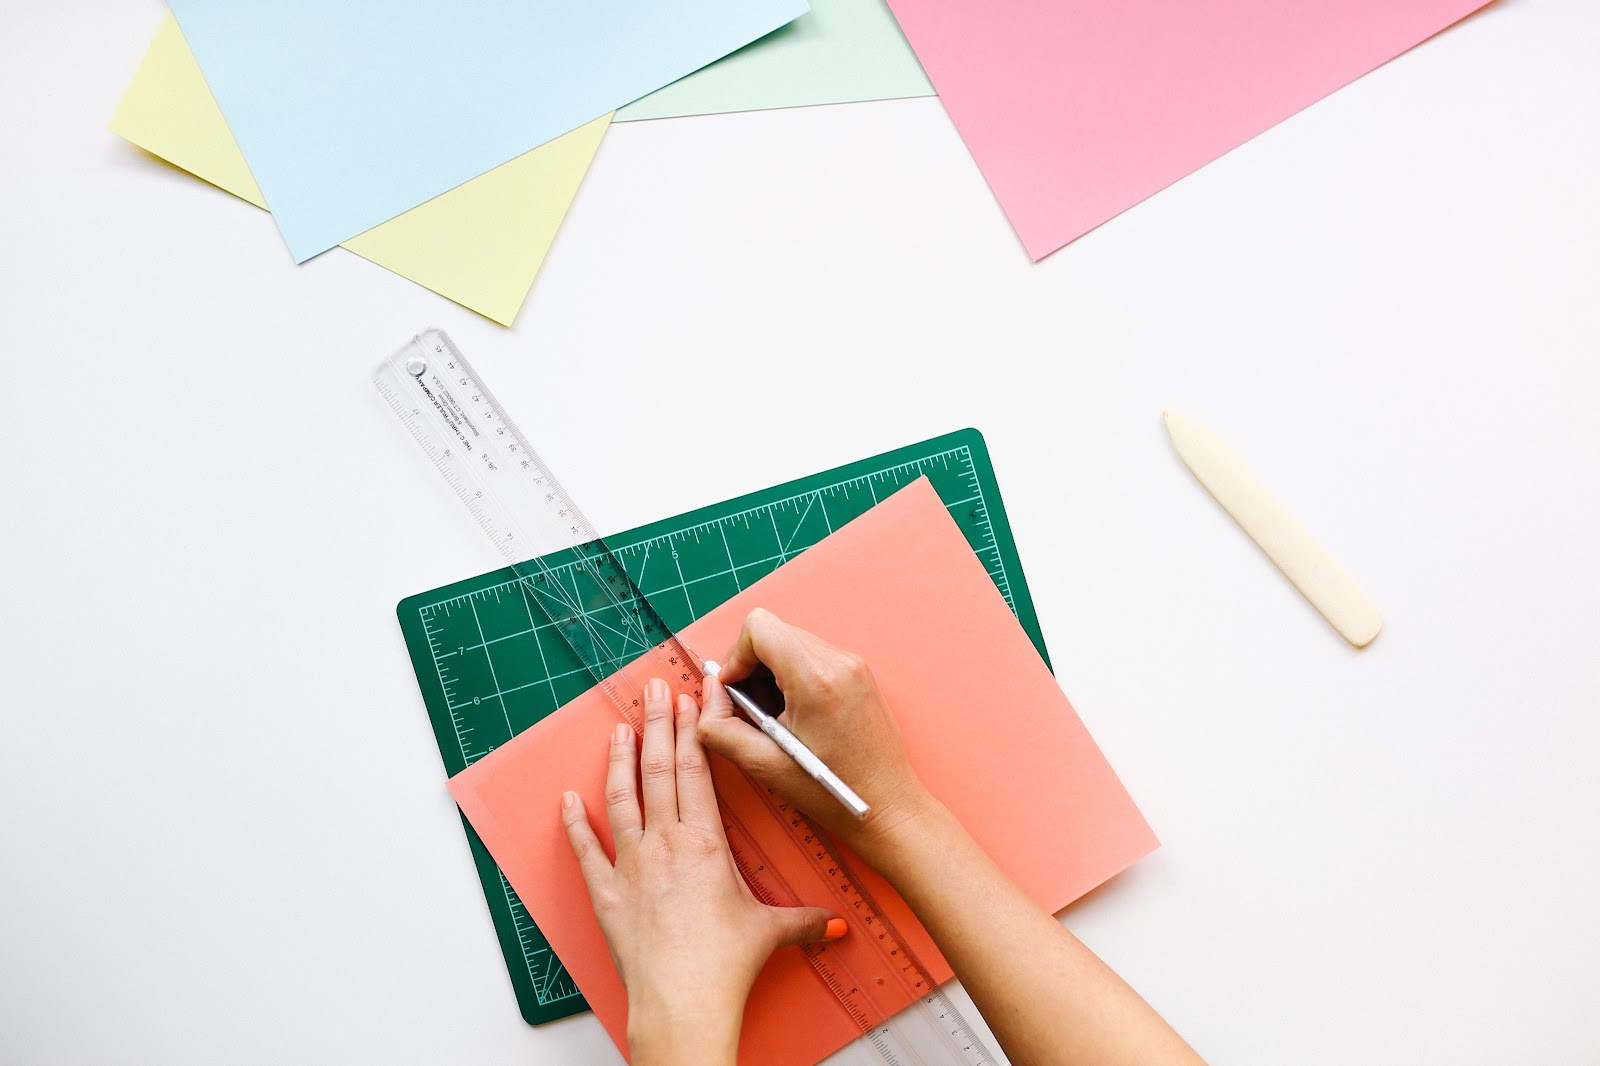 colorful paper and measuring ruler